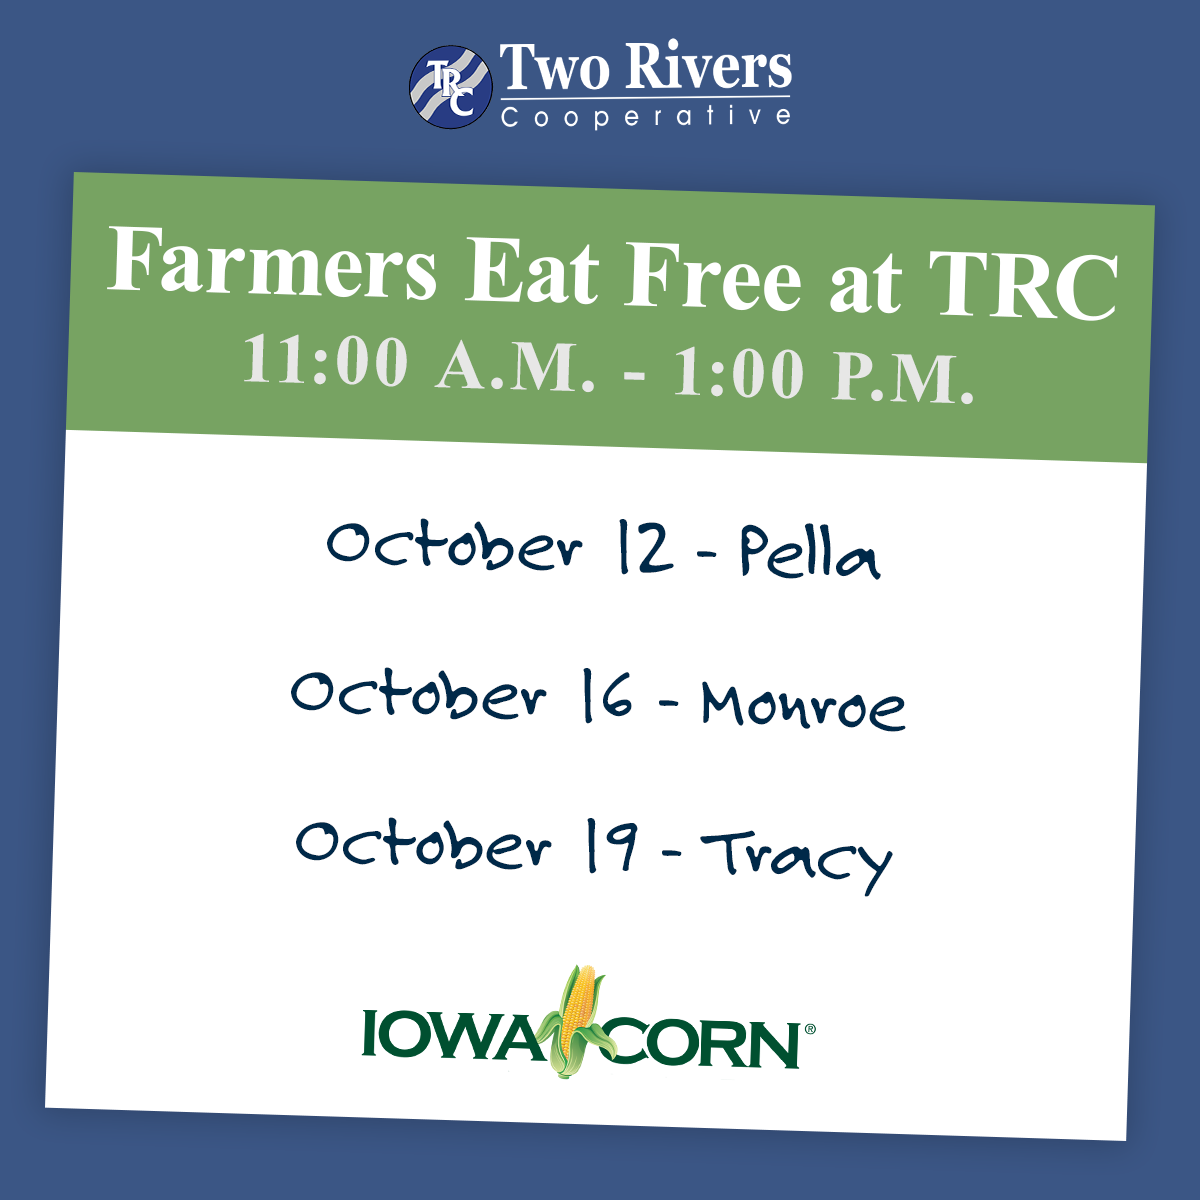 Farmers Eat Free at TRC